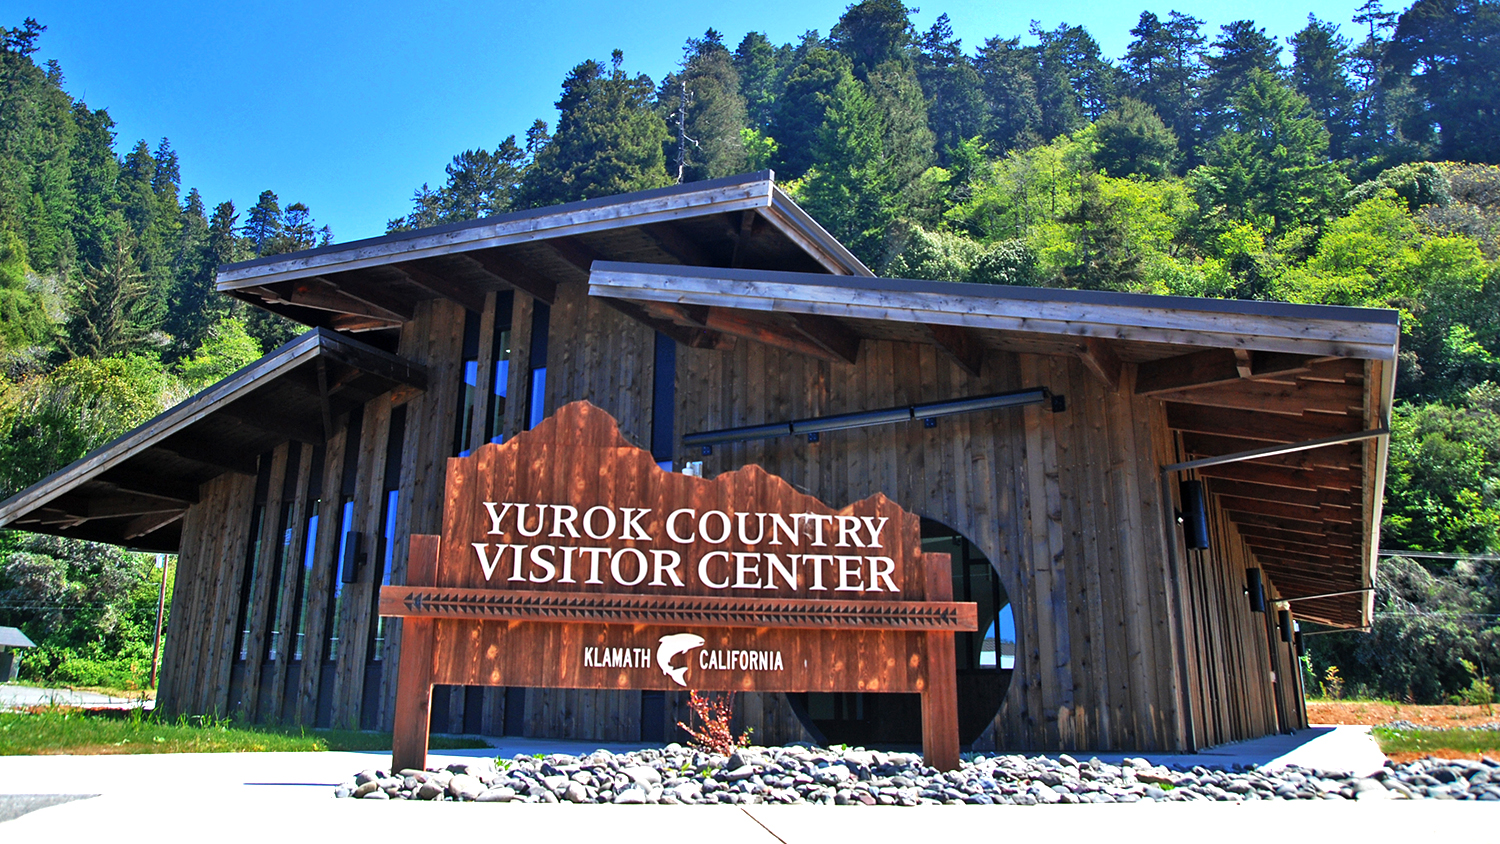 JUNE 20, 2015 YUROK COUNTY VISITOR CENTER FEATURED IMAGE